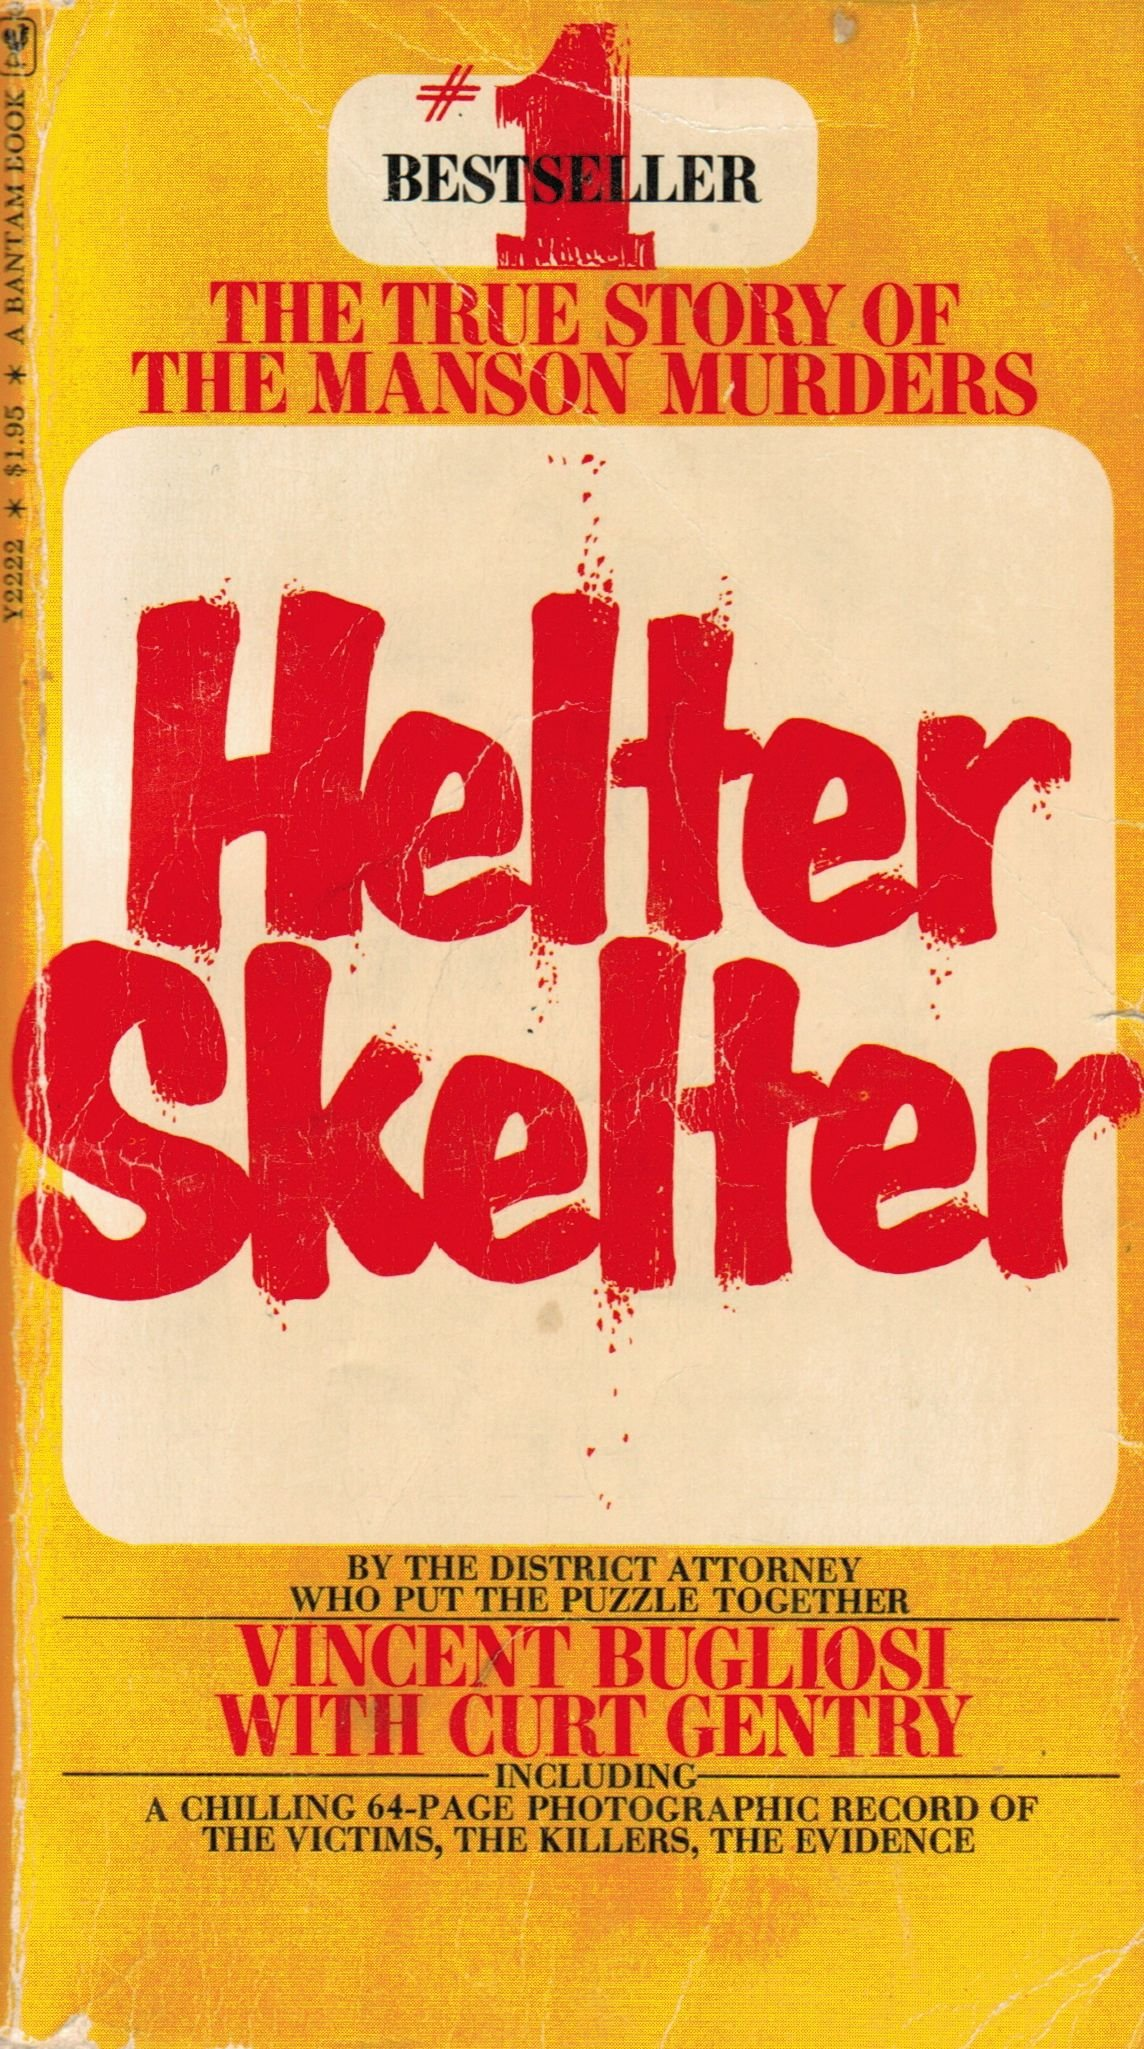 Read Helter Skelter The True Story Of The Manson Murders By Vincent Bugliosi